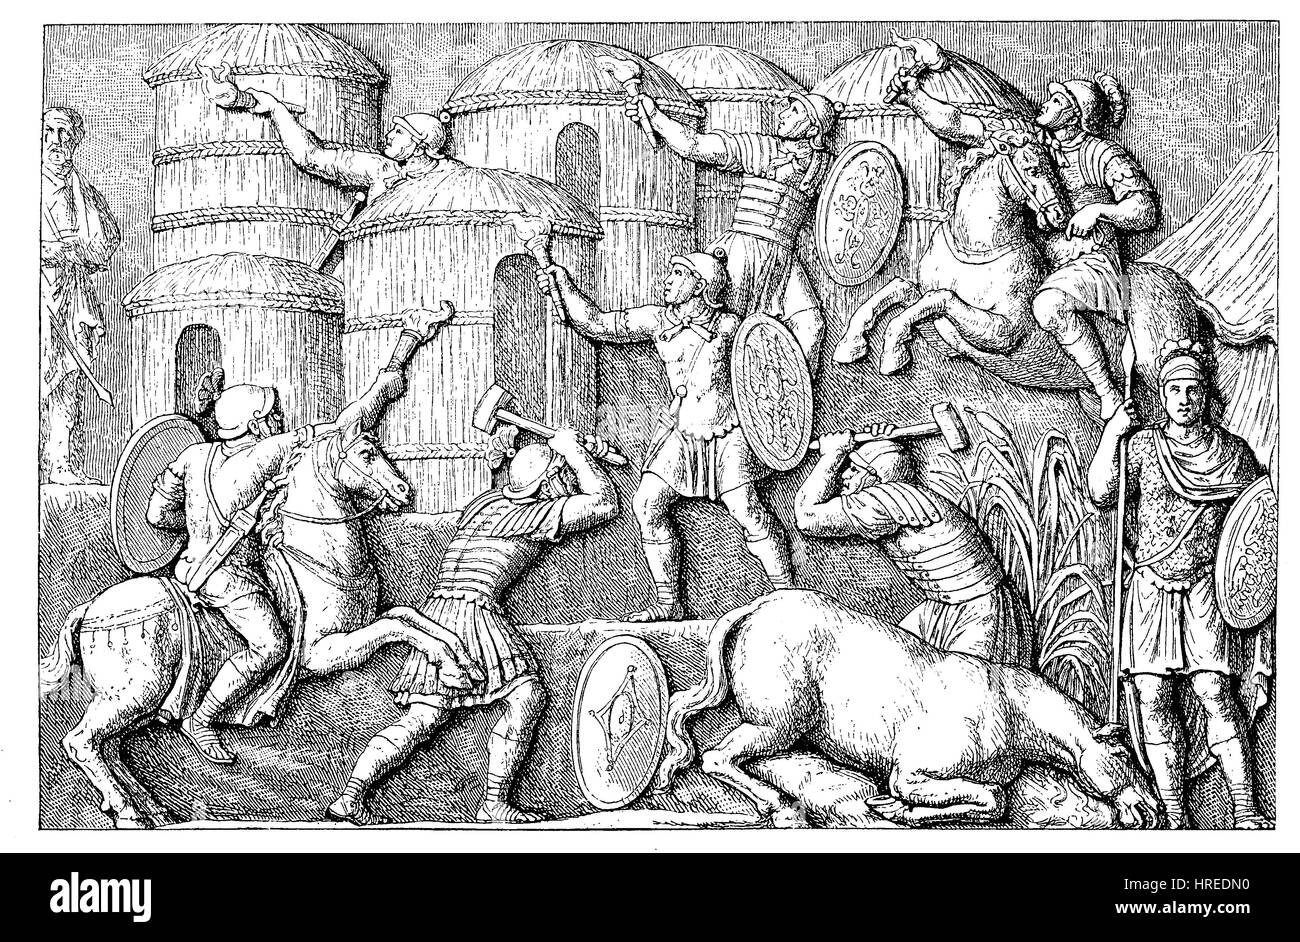 Destruction of the huts in a abandoned village, before the enemies arrived, from a relief on the victory collumn - Stock Image